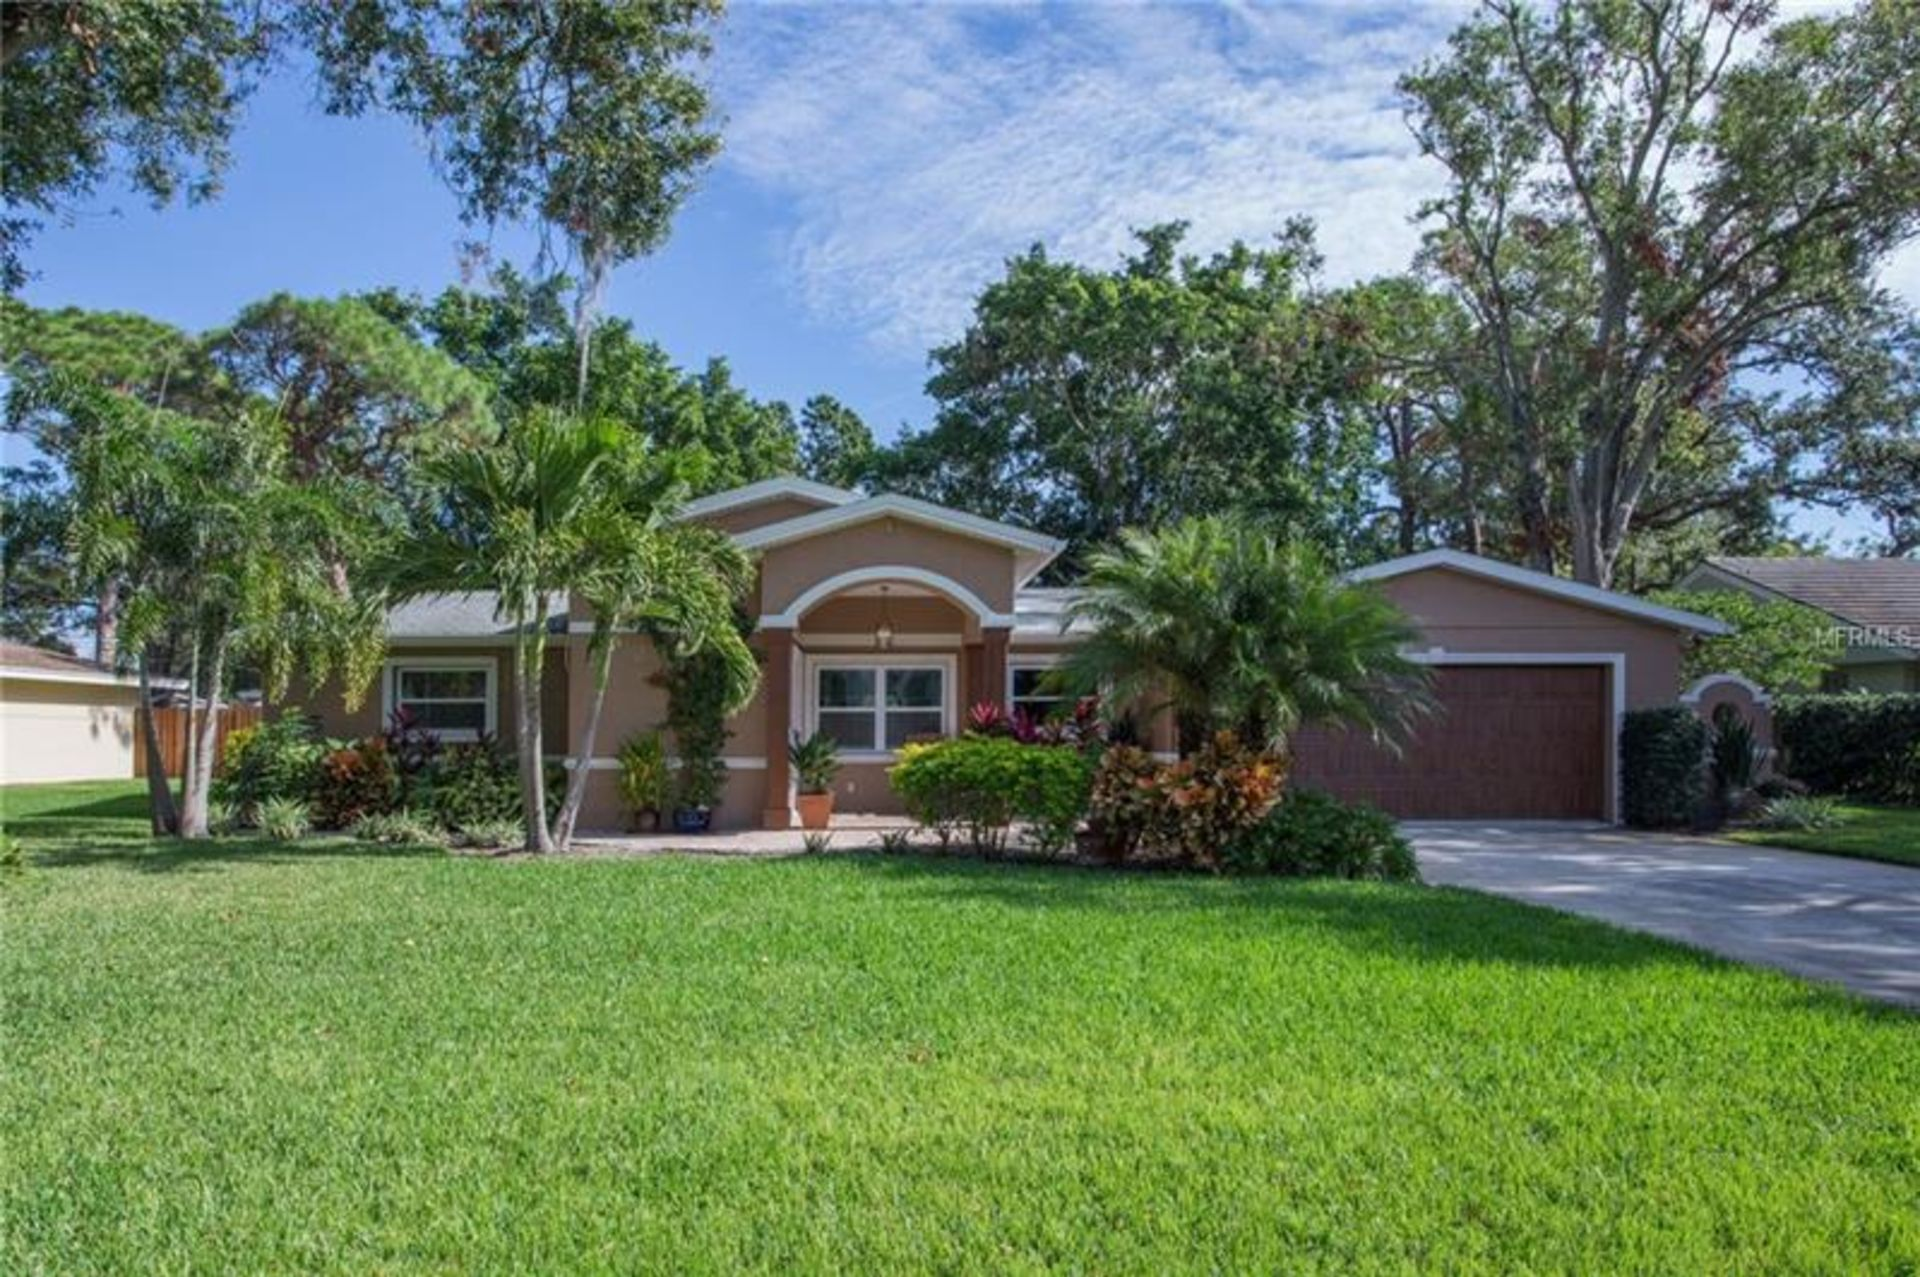 3297 WALNUT ST NE, ST PETERSBURG, FL 33704                                 Completely renovated and meticulously maintained